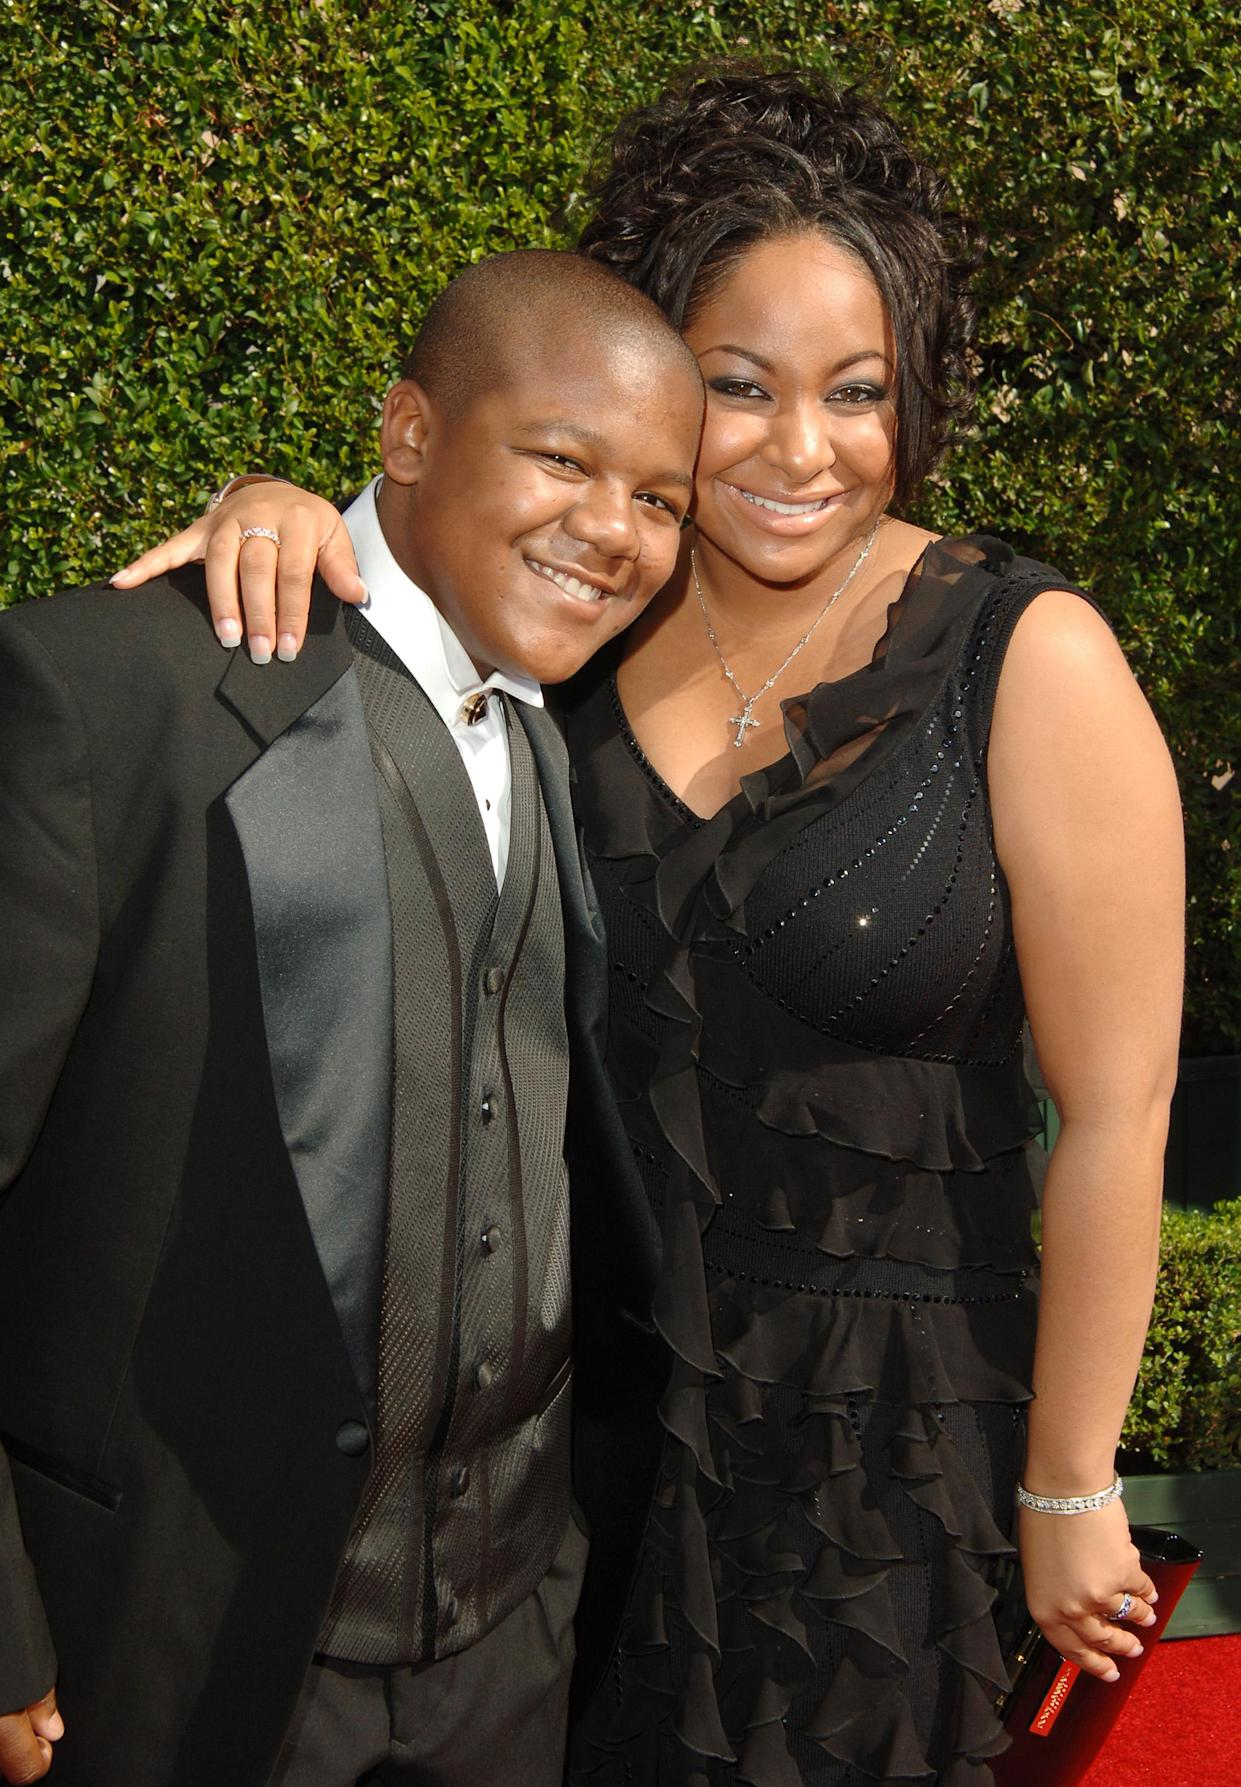 Kyle Massey and Raven during 57th Annual Primetime Creative Arts EMMY Awards - Arrivals & Red Carpet at Shrine Auditorium in Los Angeles, California, United States. (Photo by Jon Kopaloff/FilmMagic)